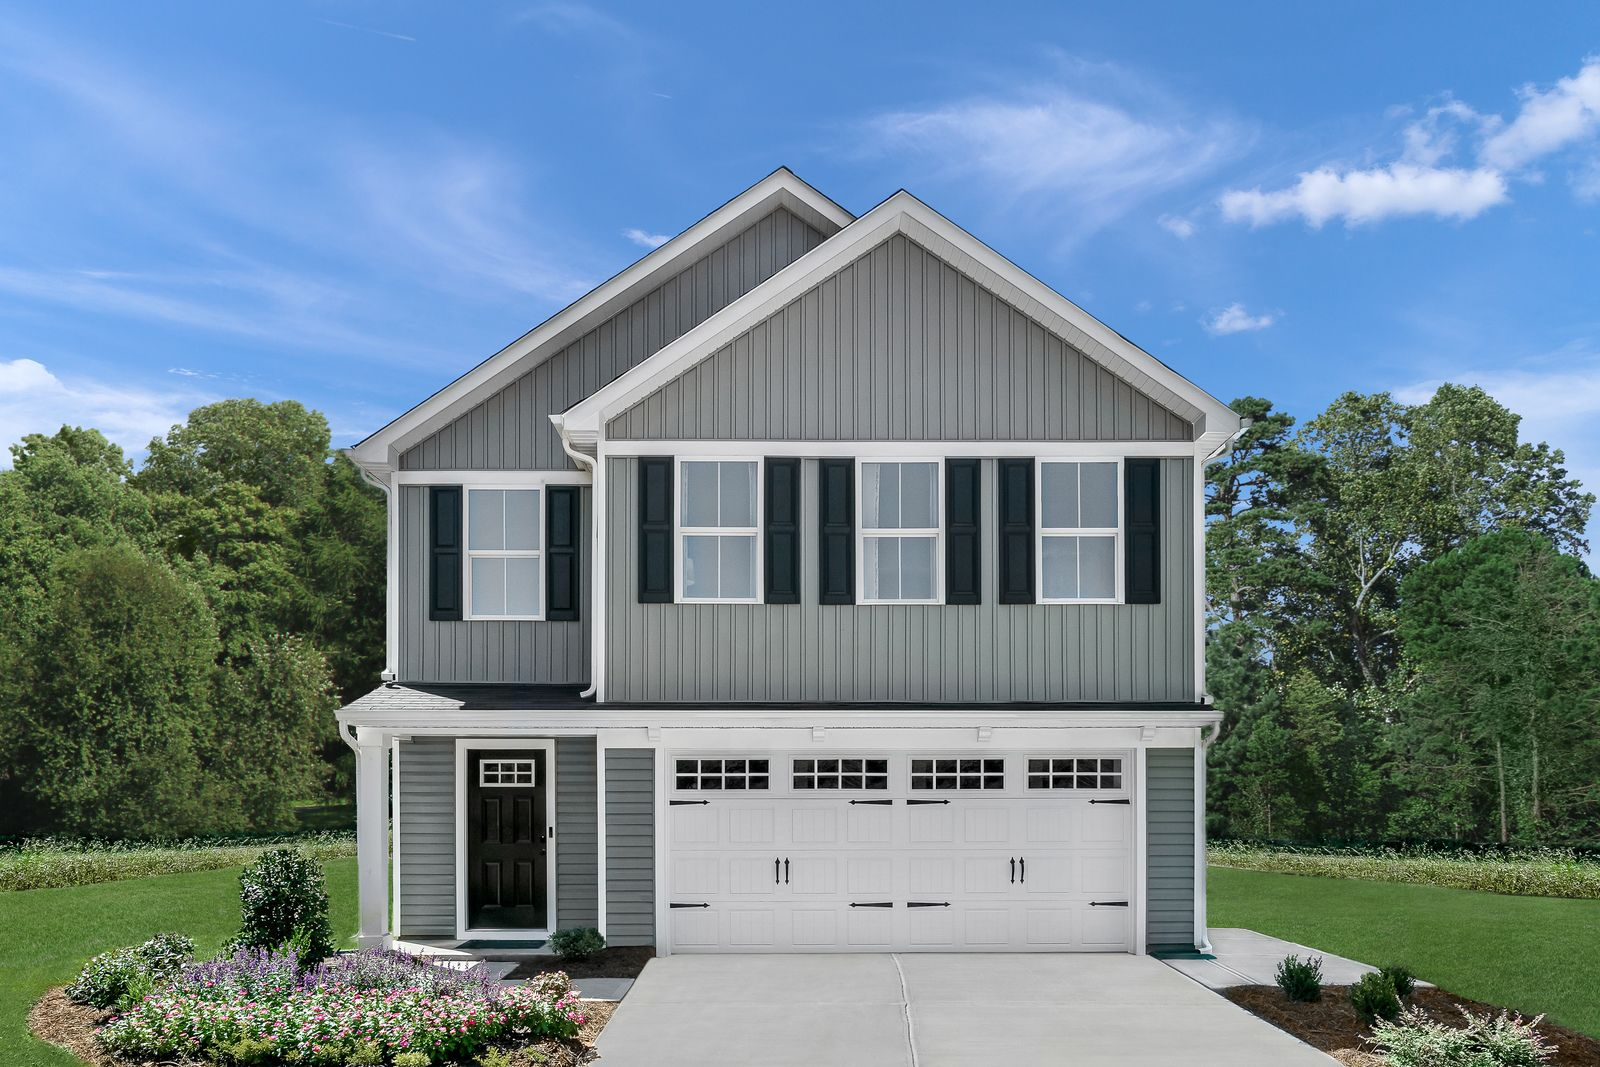 New Phase Coming June 2021 Close to Uptown Charlotte. Low $300s:Join the VIP listto get the latest updates and own a new home in this convenient location near I-77 and I-85.